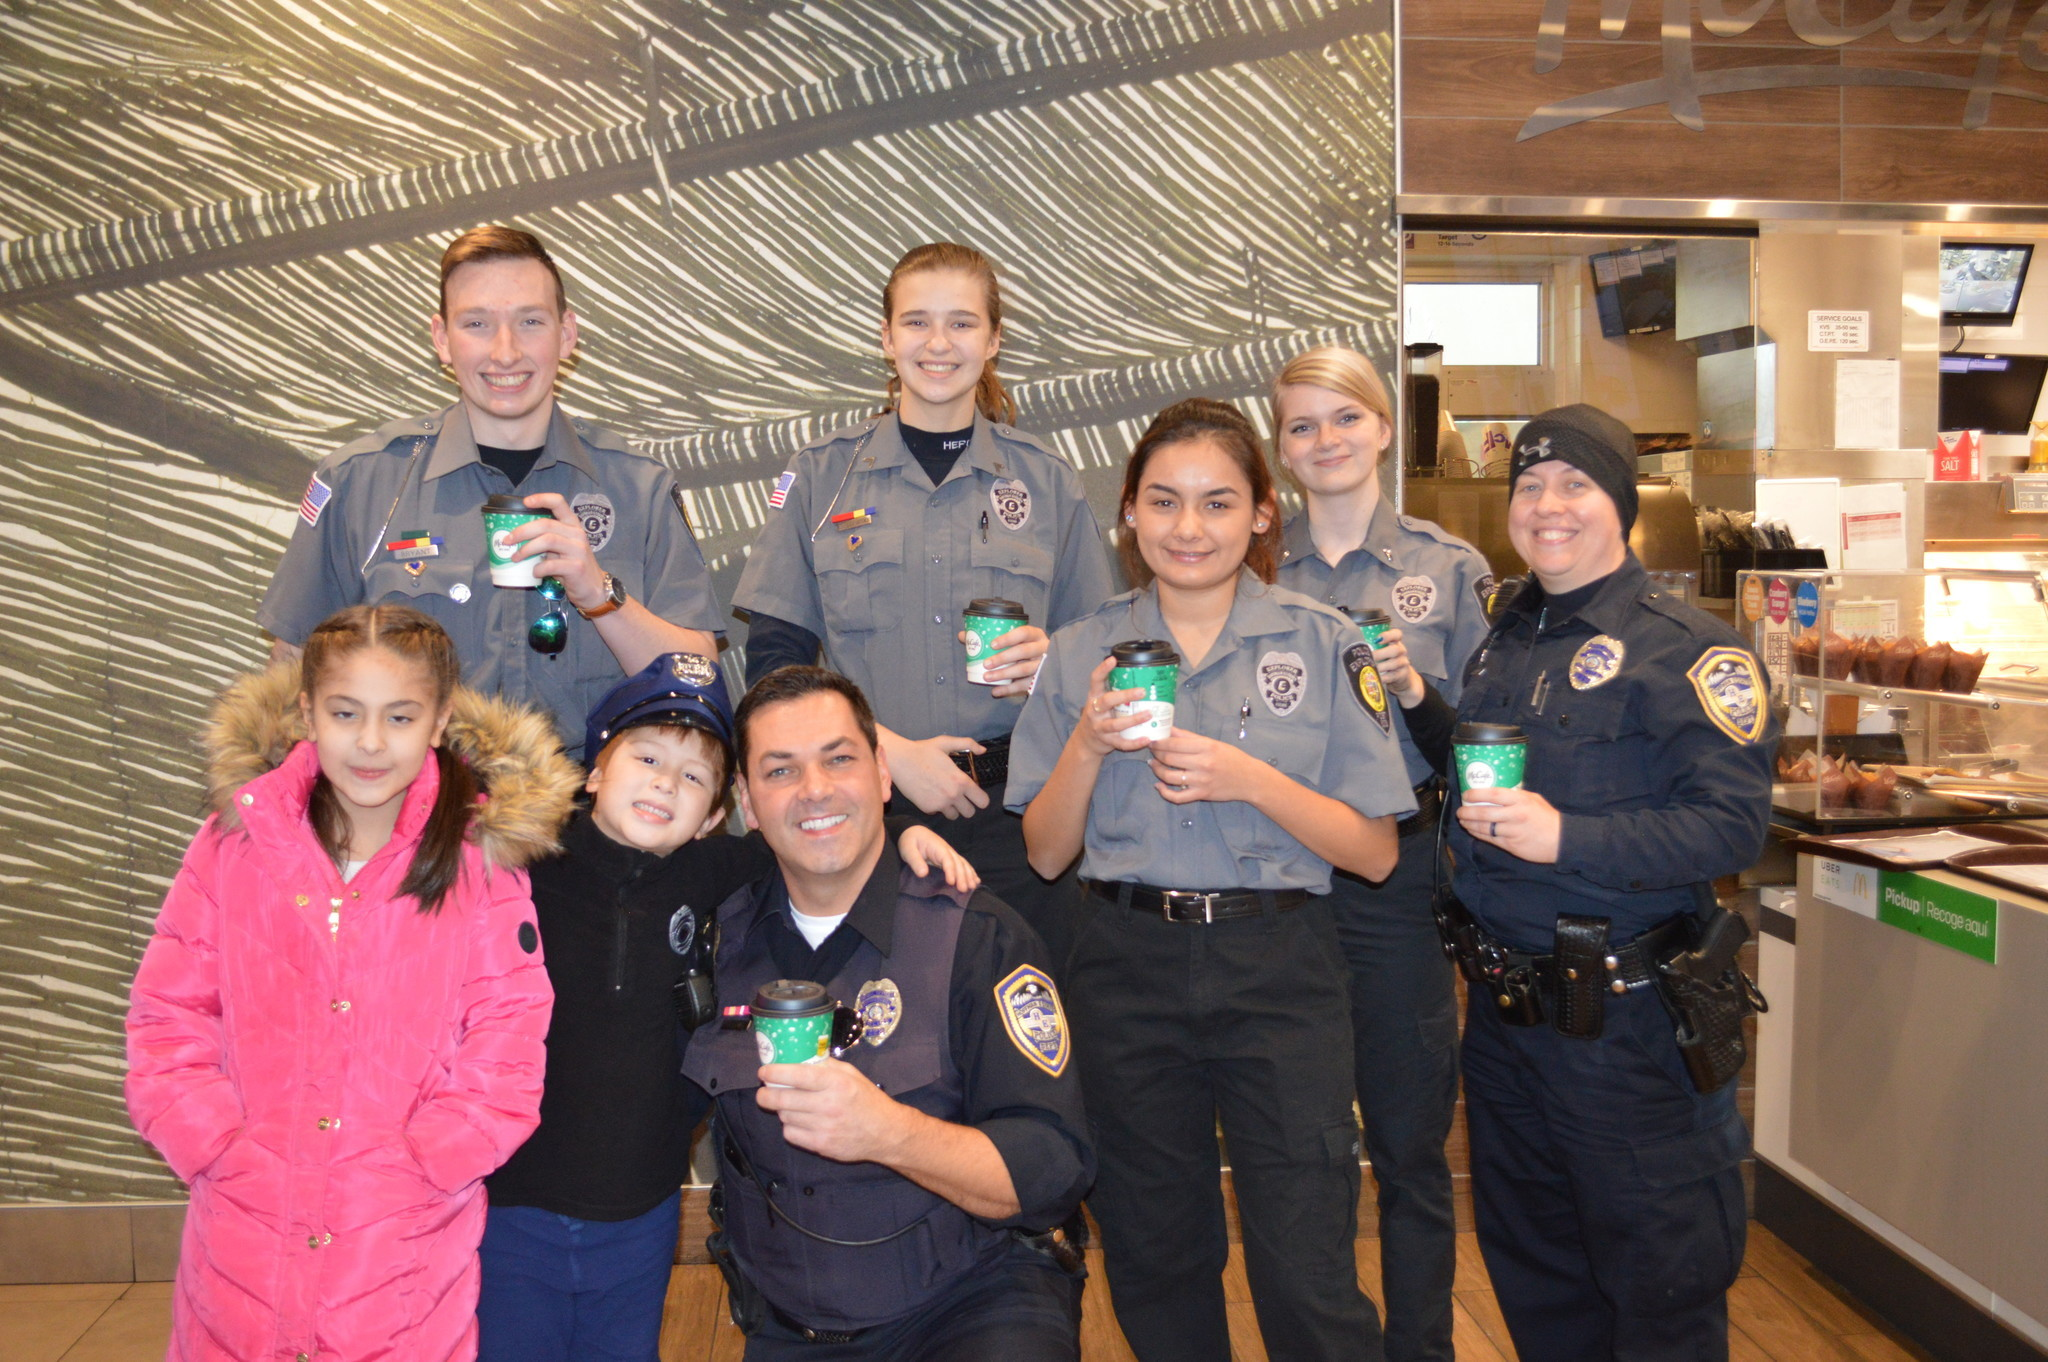 Cocoa with Cops brings community and police together